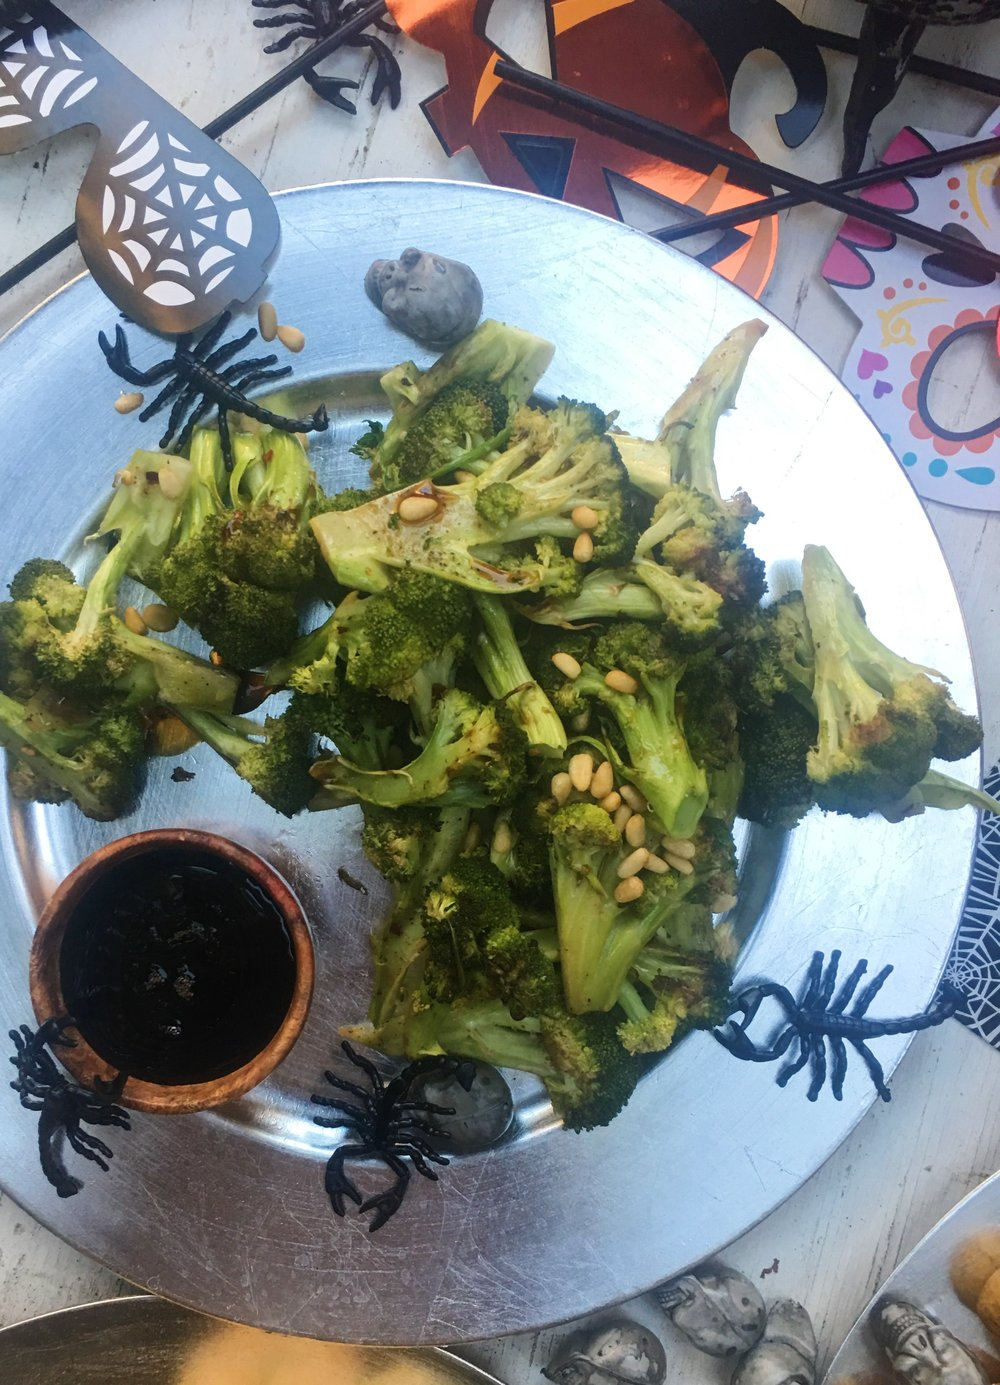 Broccoli and pine nuts all roasted together are delicious -- and nutritious for kids. It's Halloween, so the pomegranate molasses dipping sauce is both seasonal and also a way for kids to pretend this is candy. You know better.